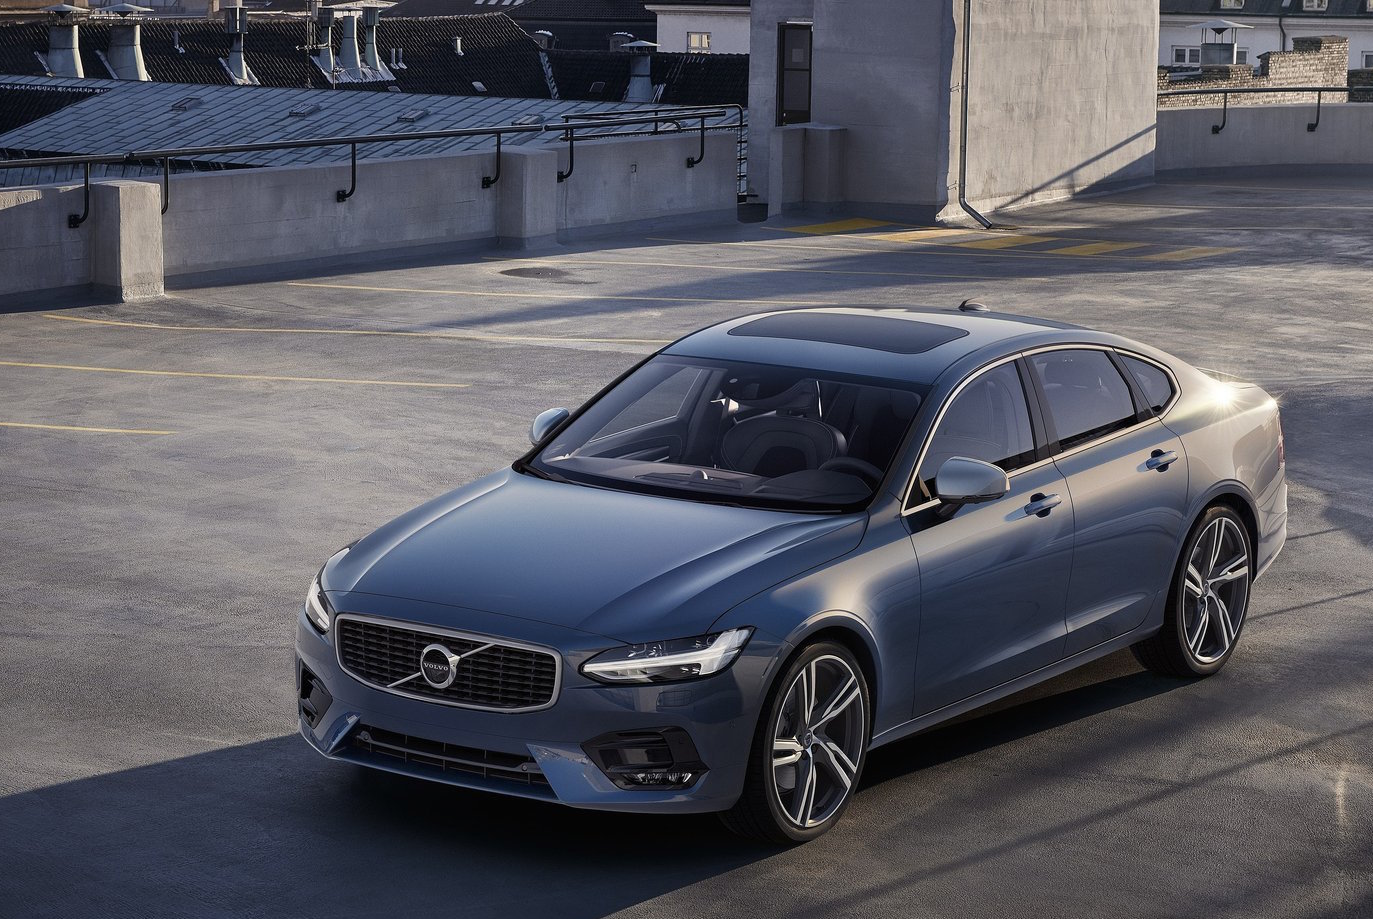 2018 volvo models.  volvo volvo is preparing another batch of polestar models from around 2018  according to a report autocar and they will use very different approach  with 2018 volvo